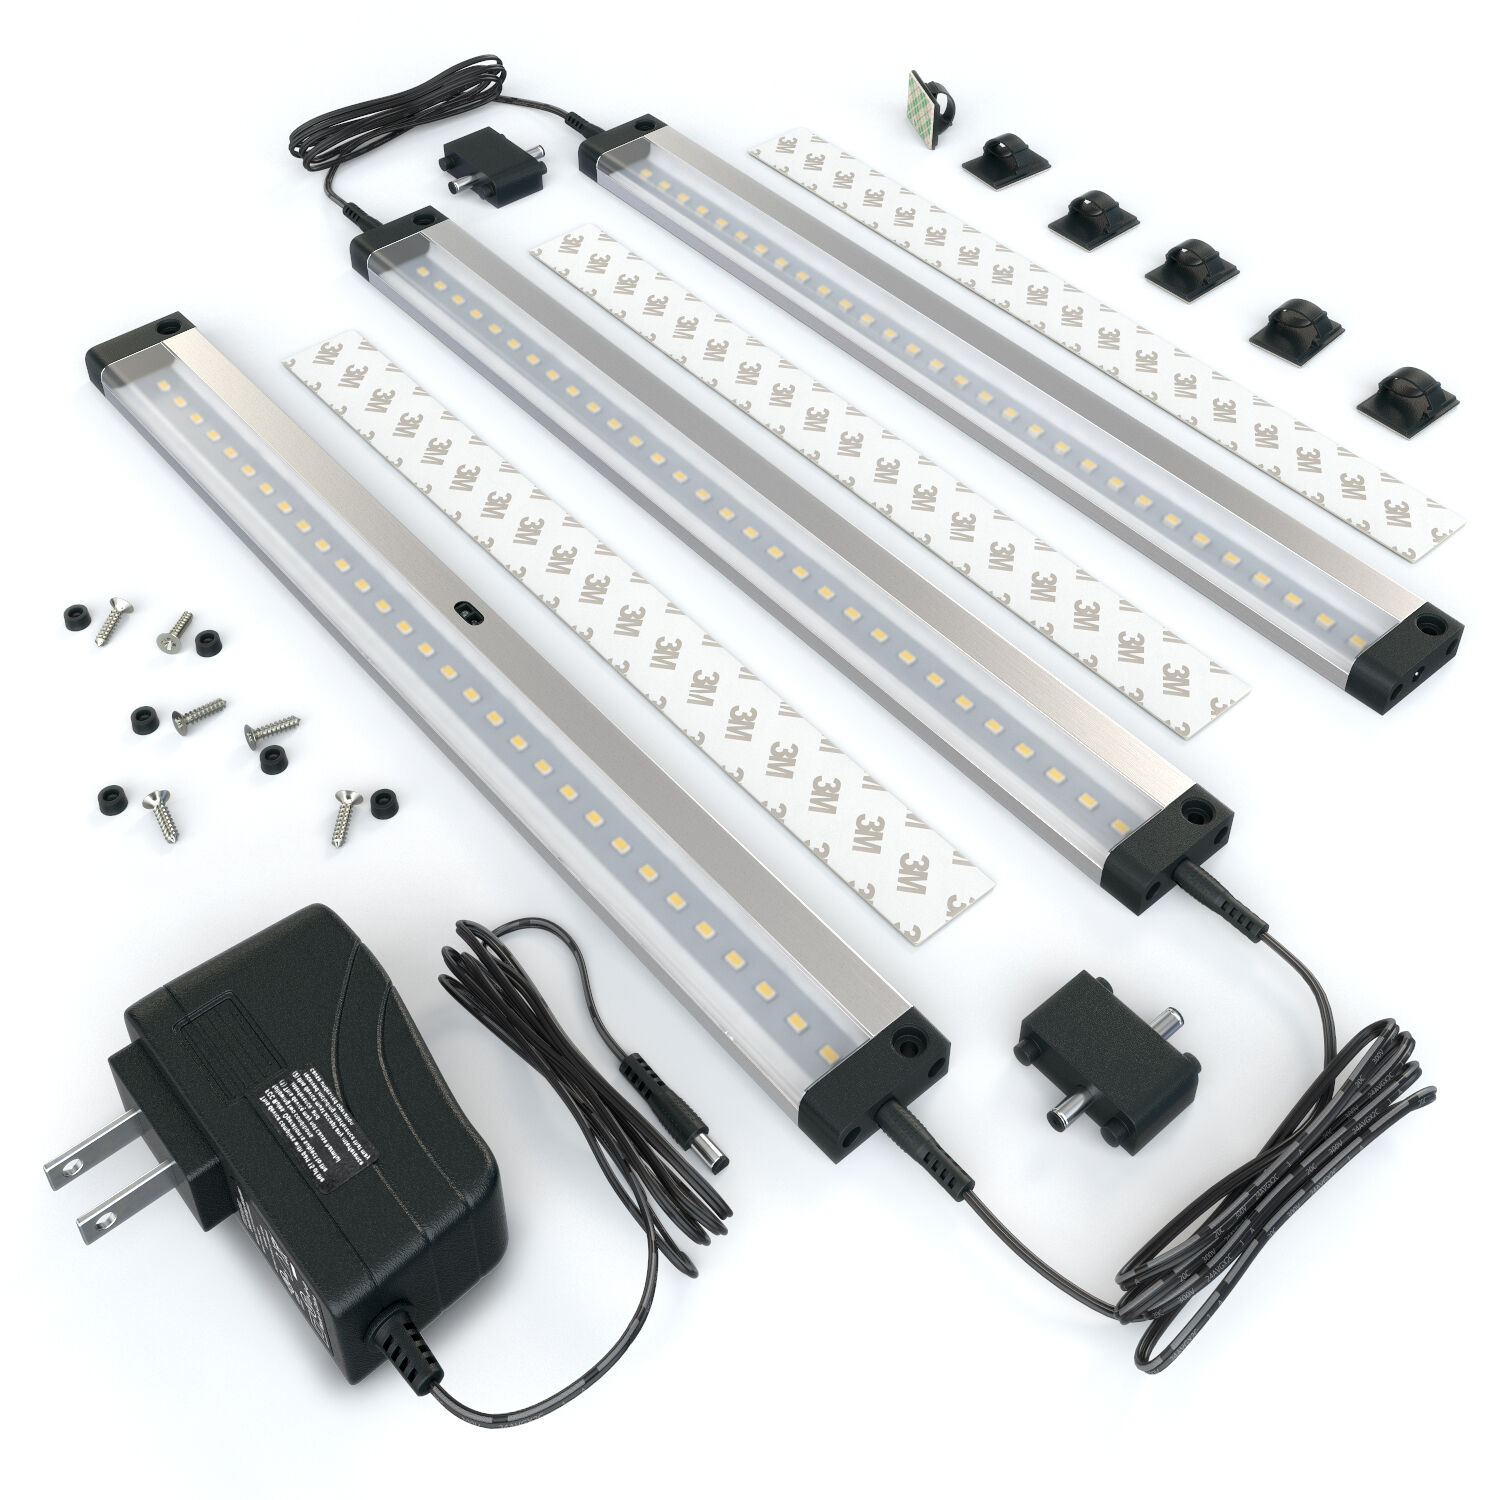 Details About Eshine 3 Panels 12 Inch Led Dimmable Under Cabinet Lighting Kit Cool White